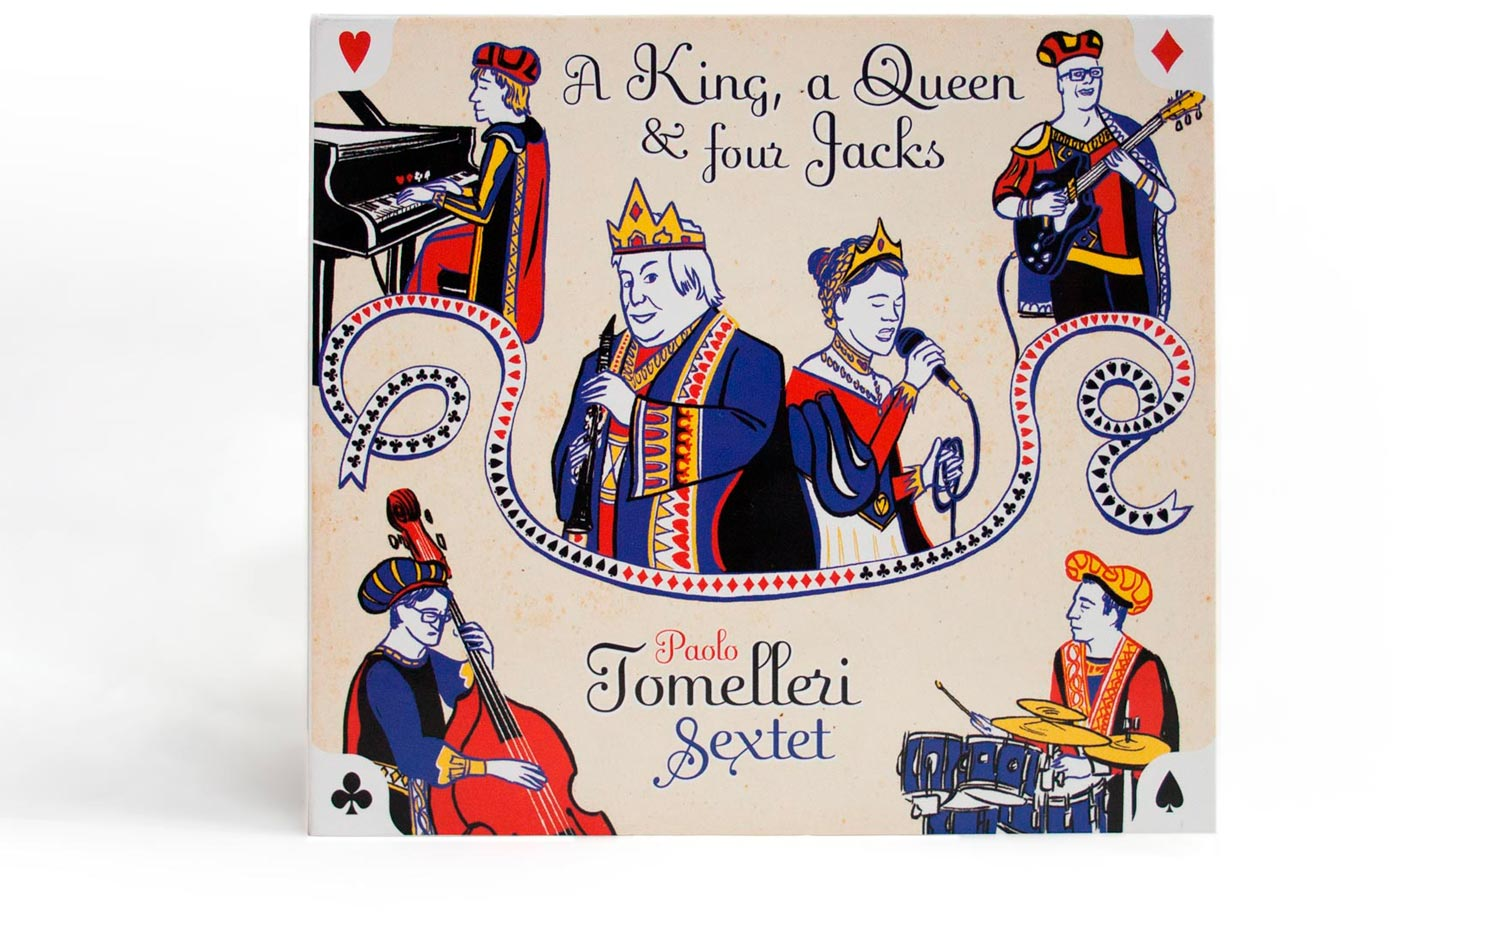 Paolo Tomelleri Sextet - A King, a Queen and four Jacks